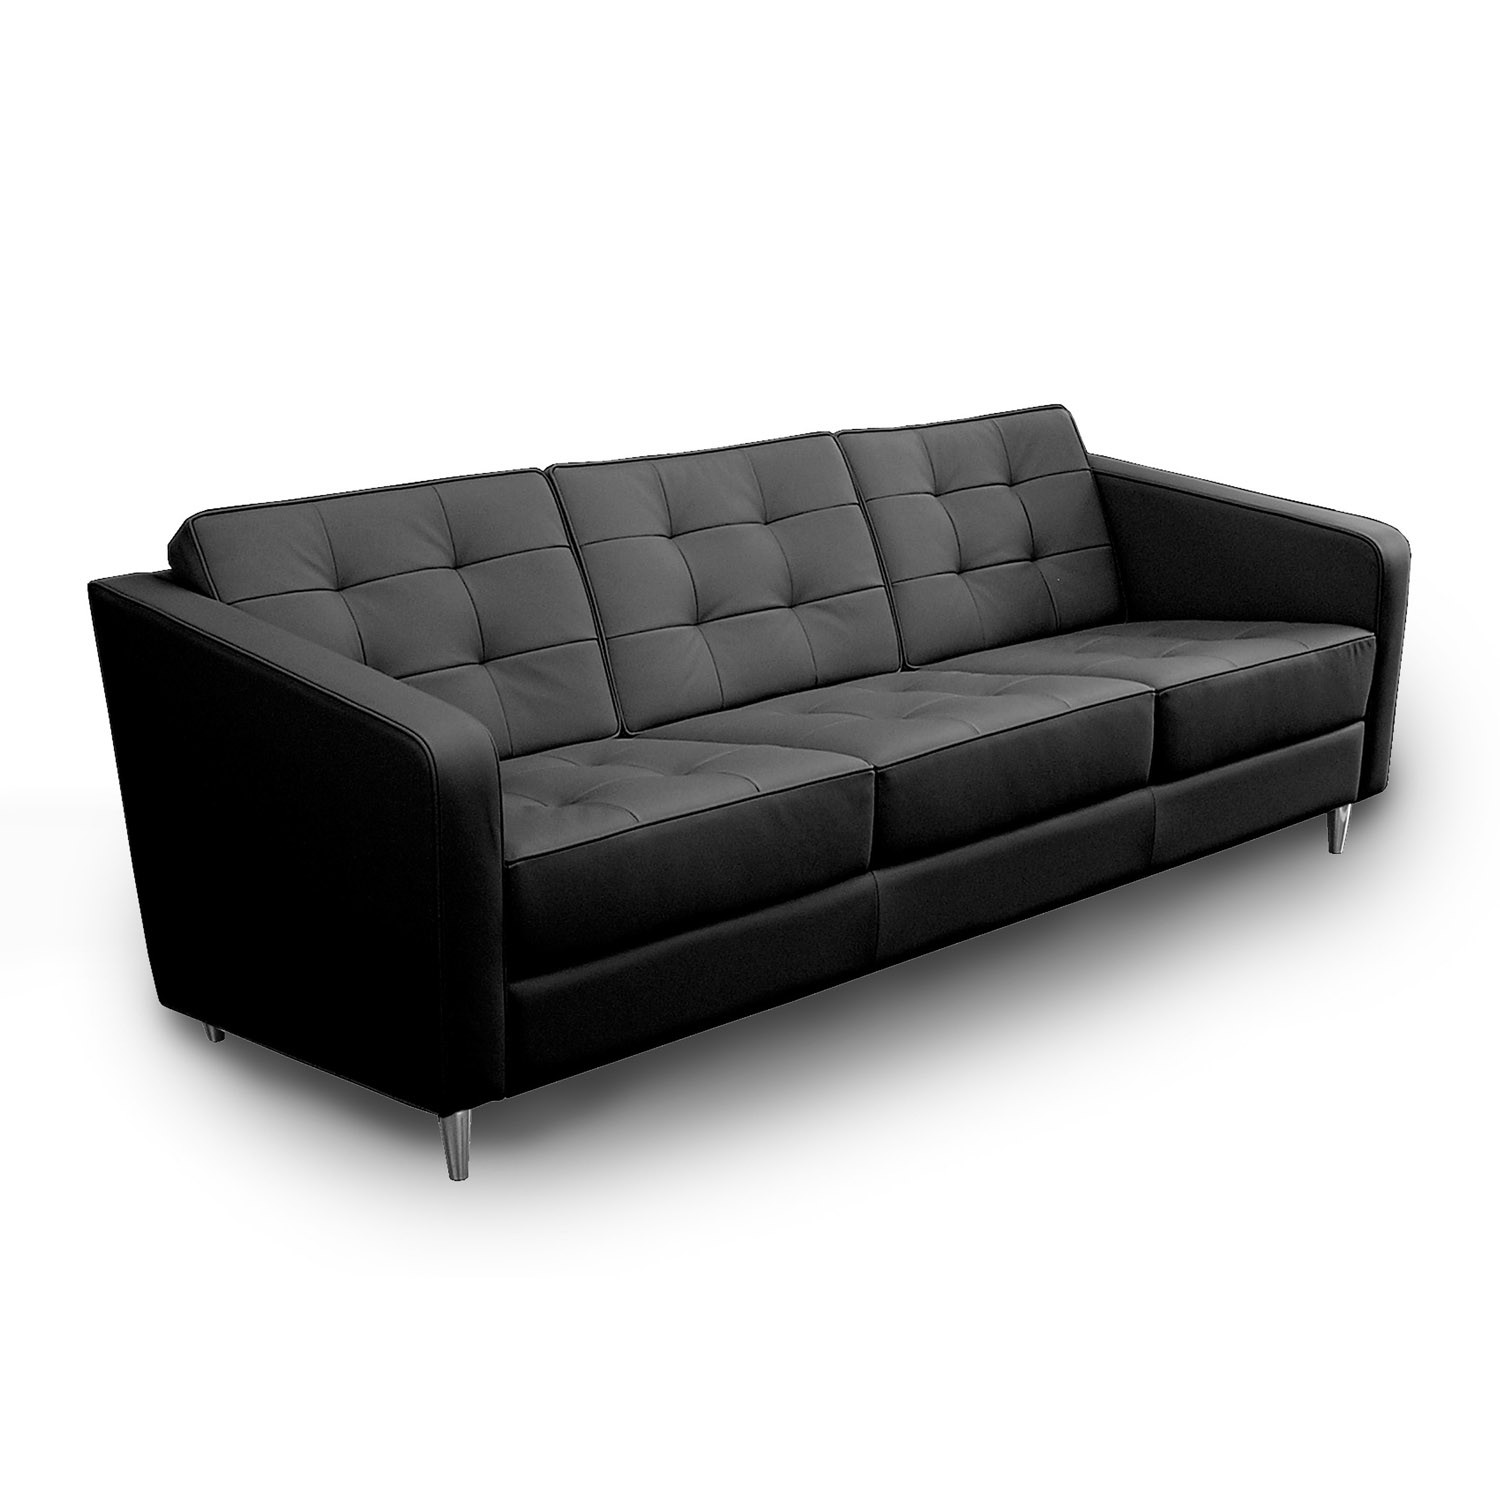 Fifth Avenue Office Sofa